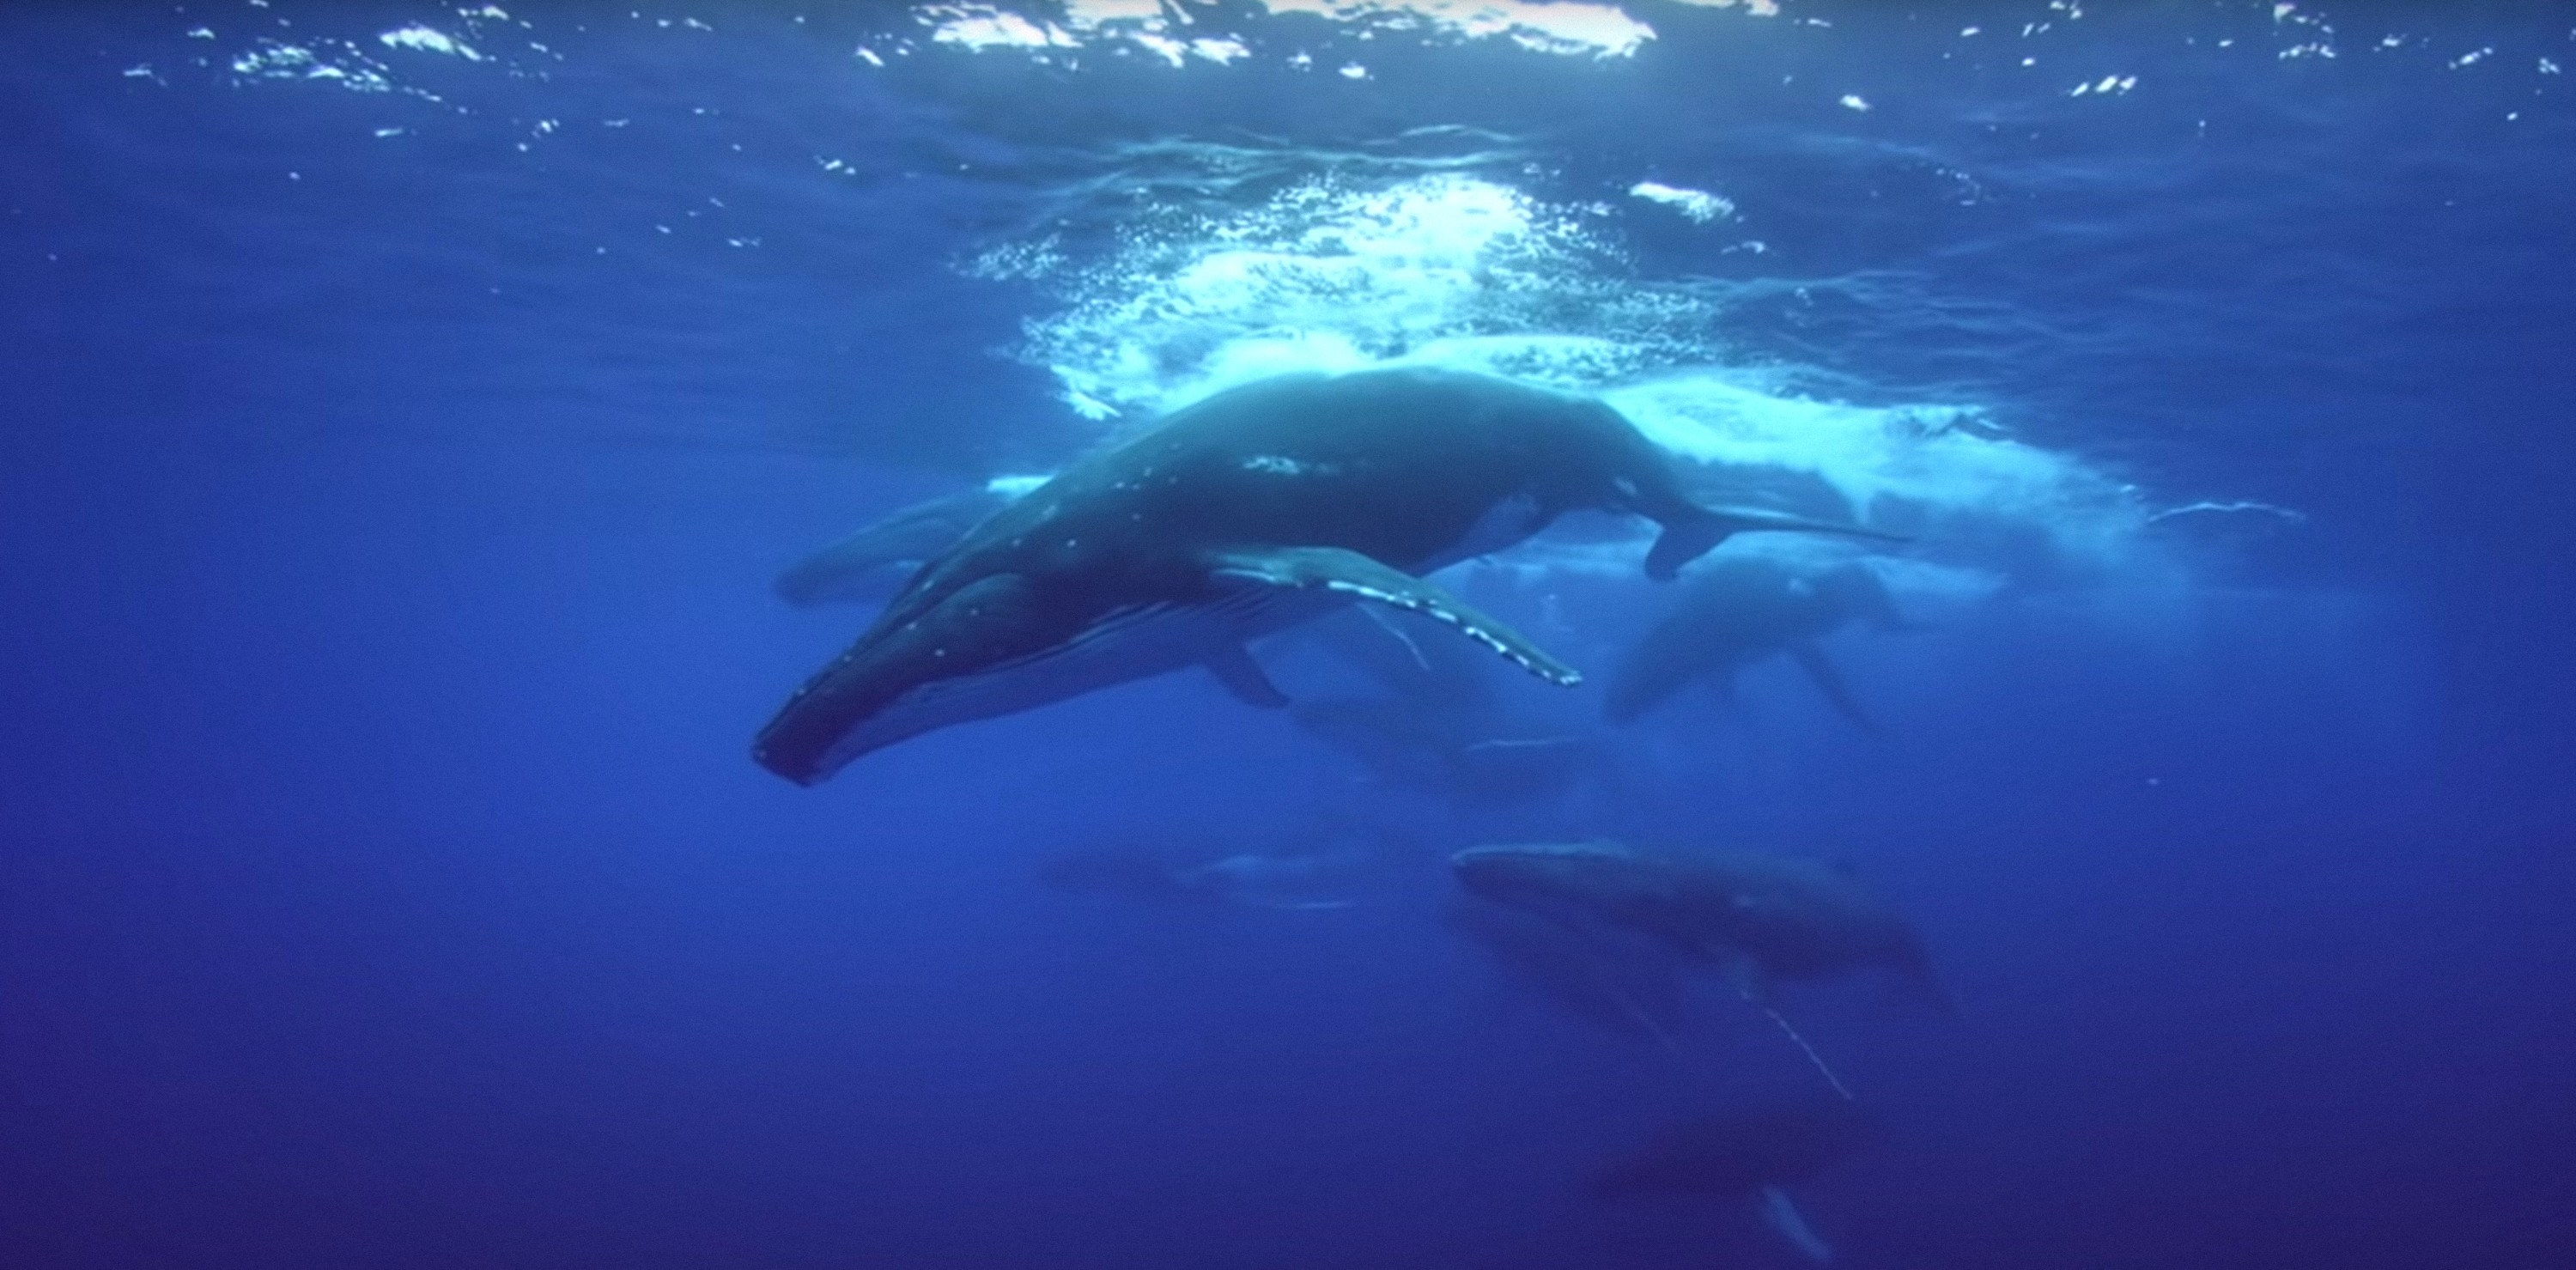 a humpback whale in the ocean